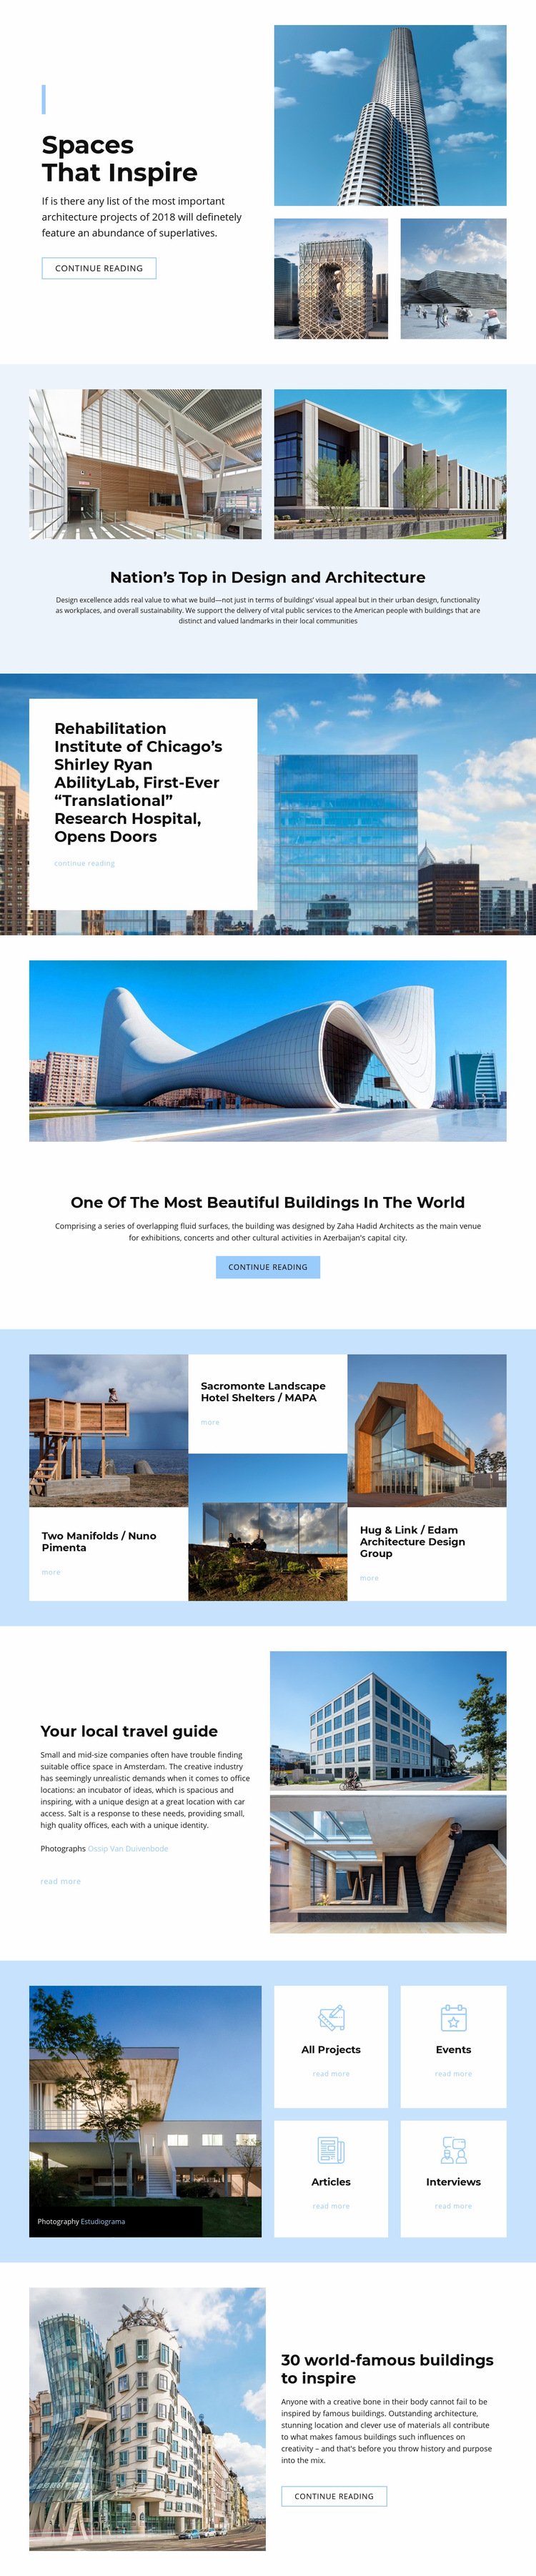 Space-inspired architechture Web Page Design